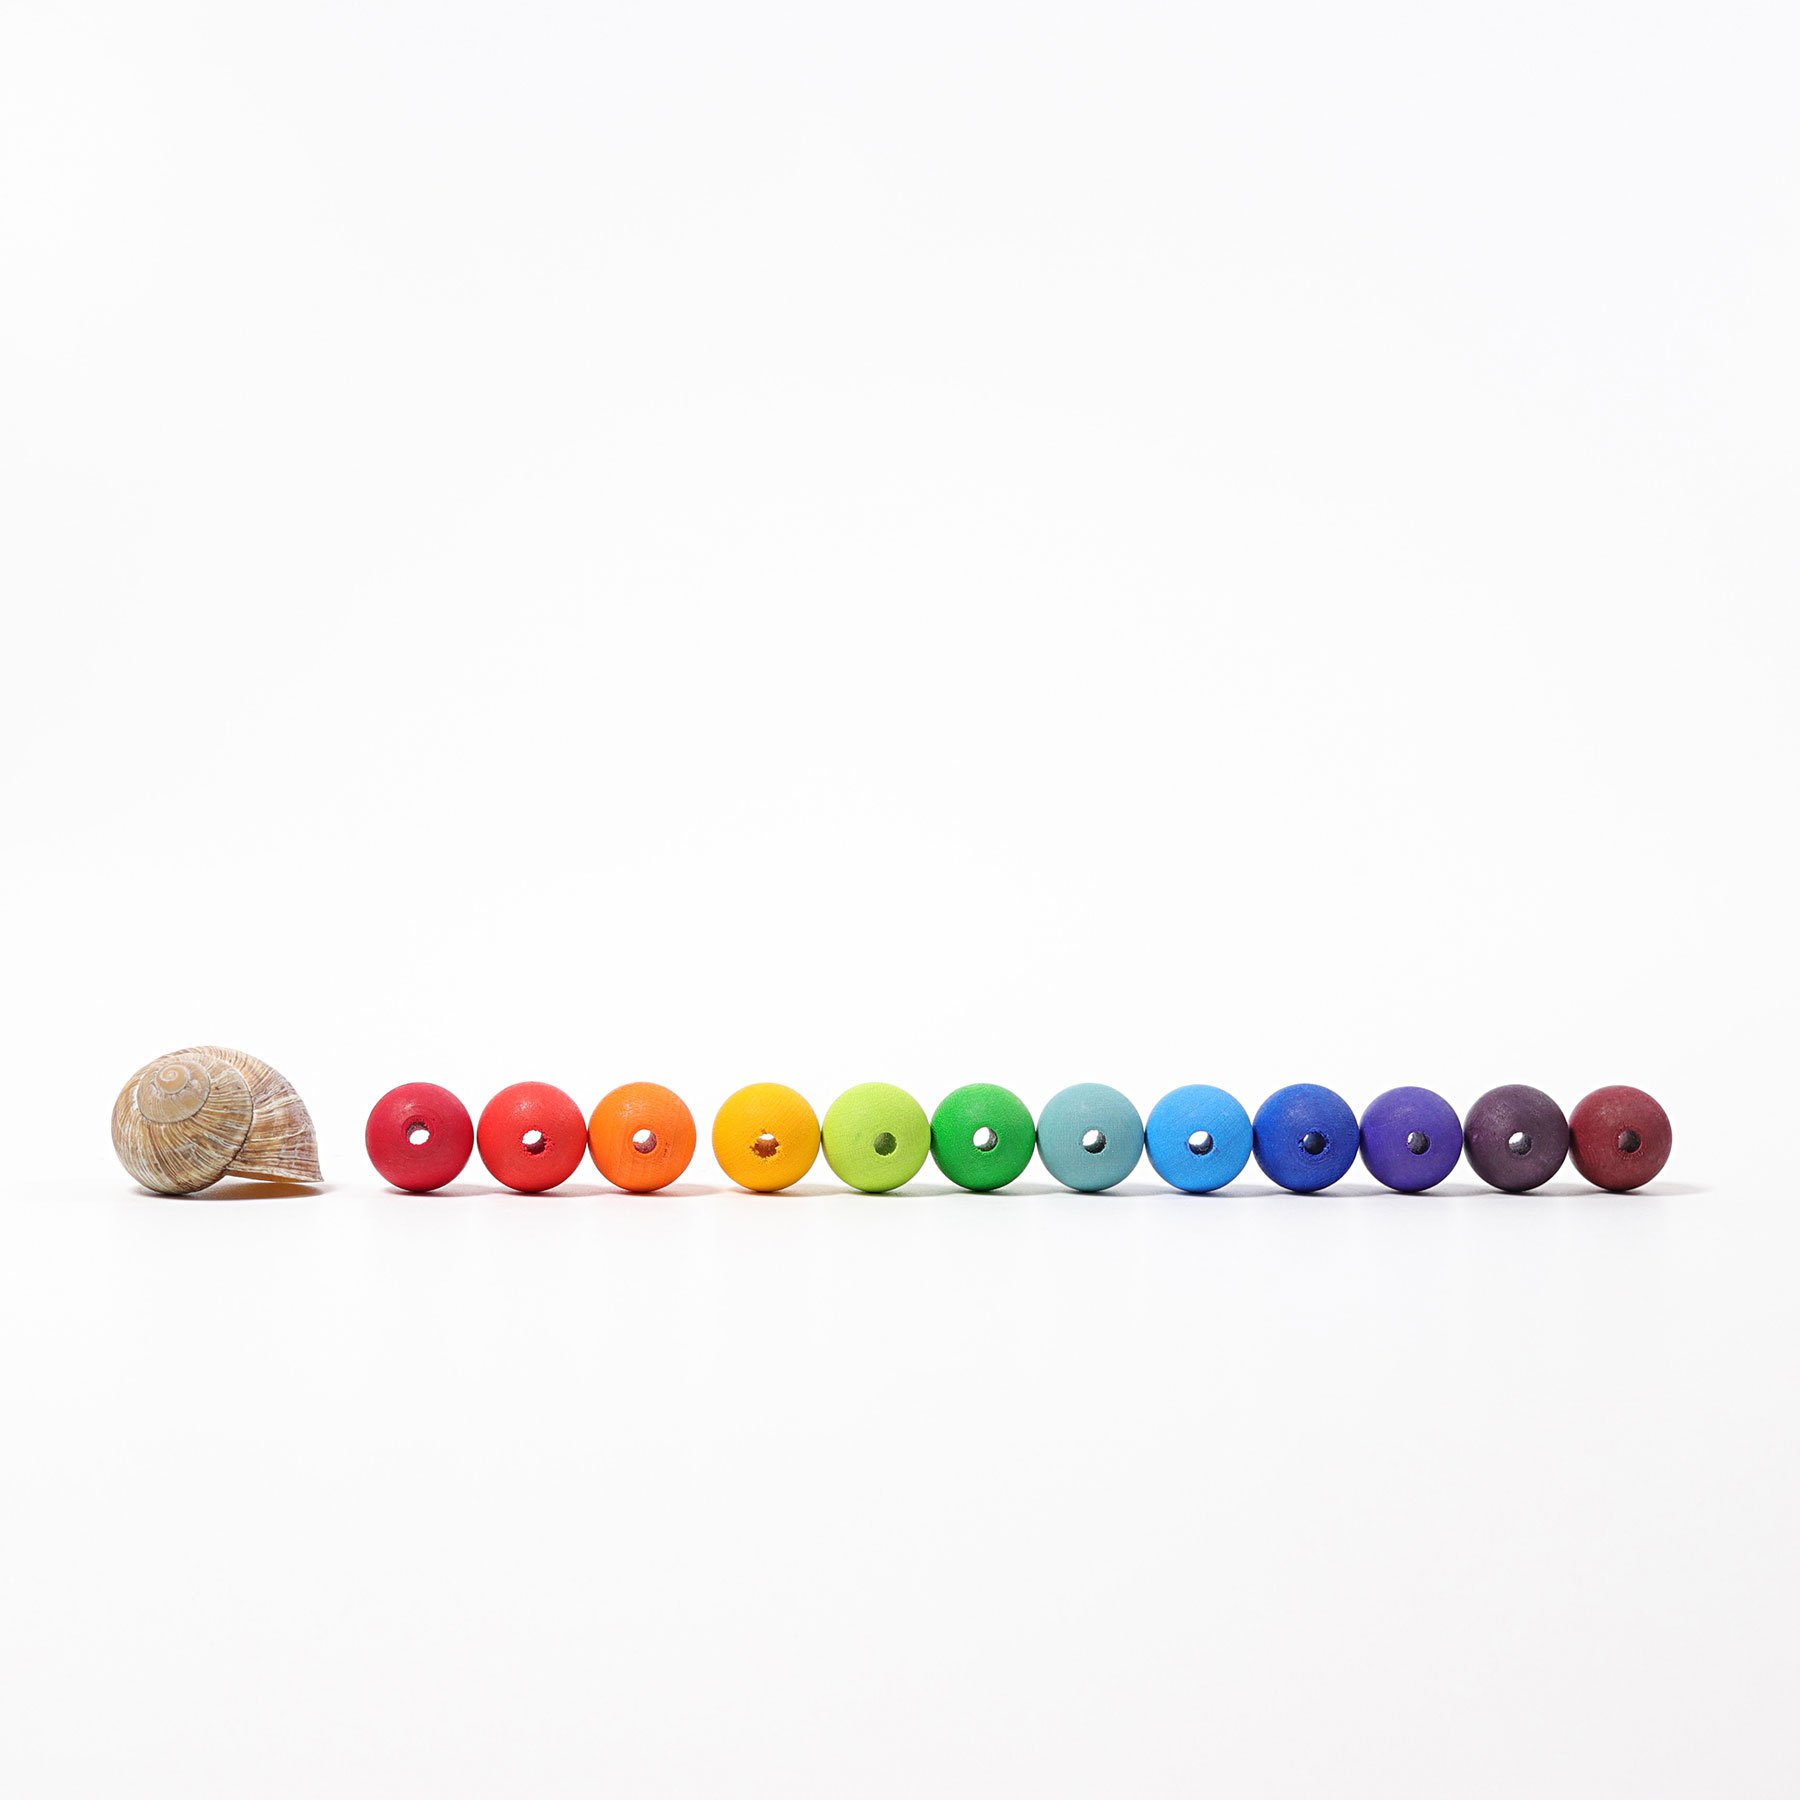 wooden beads by Grimms Spiel & Holz